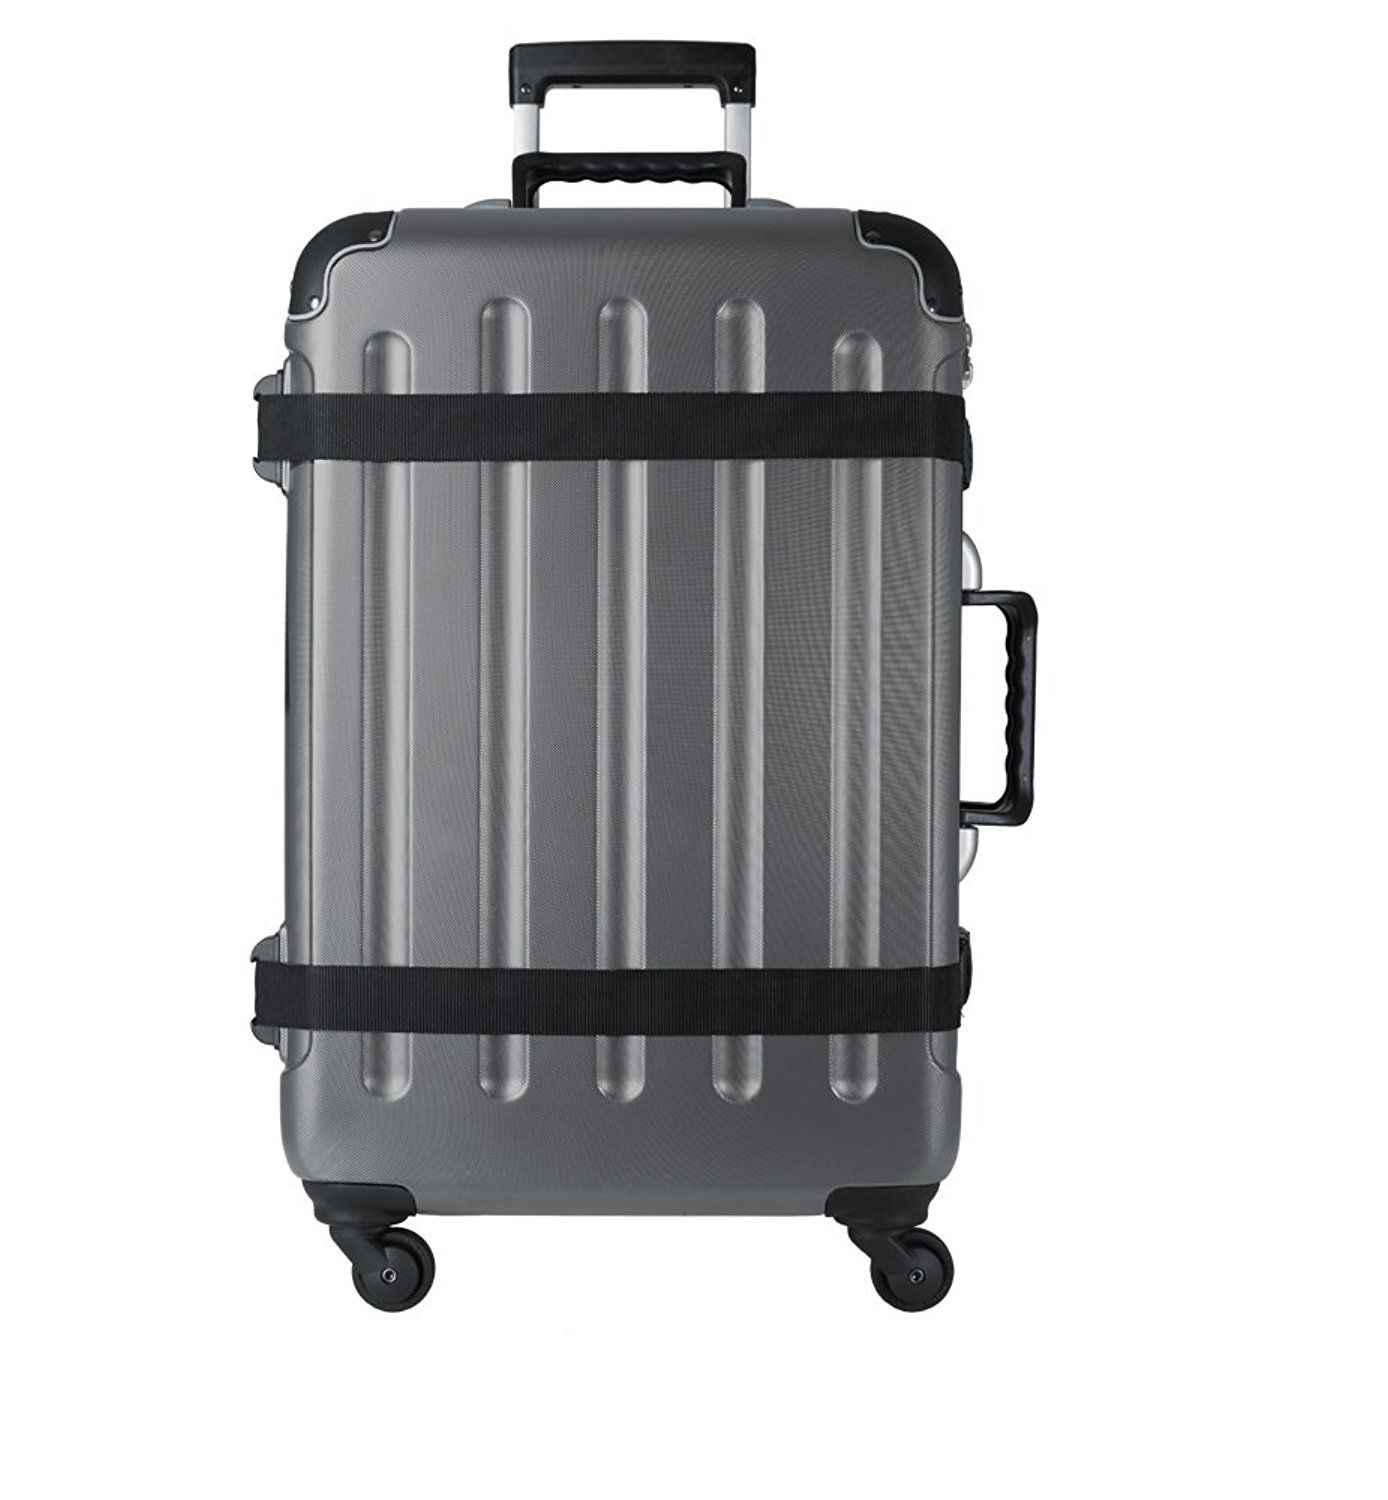 Vin Garde Valise Grande 04 Wine Travel Case Find Out More About The Great Product At The Image Link Wine Travel Case Wine Travel Suitcase Traveling